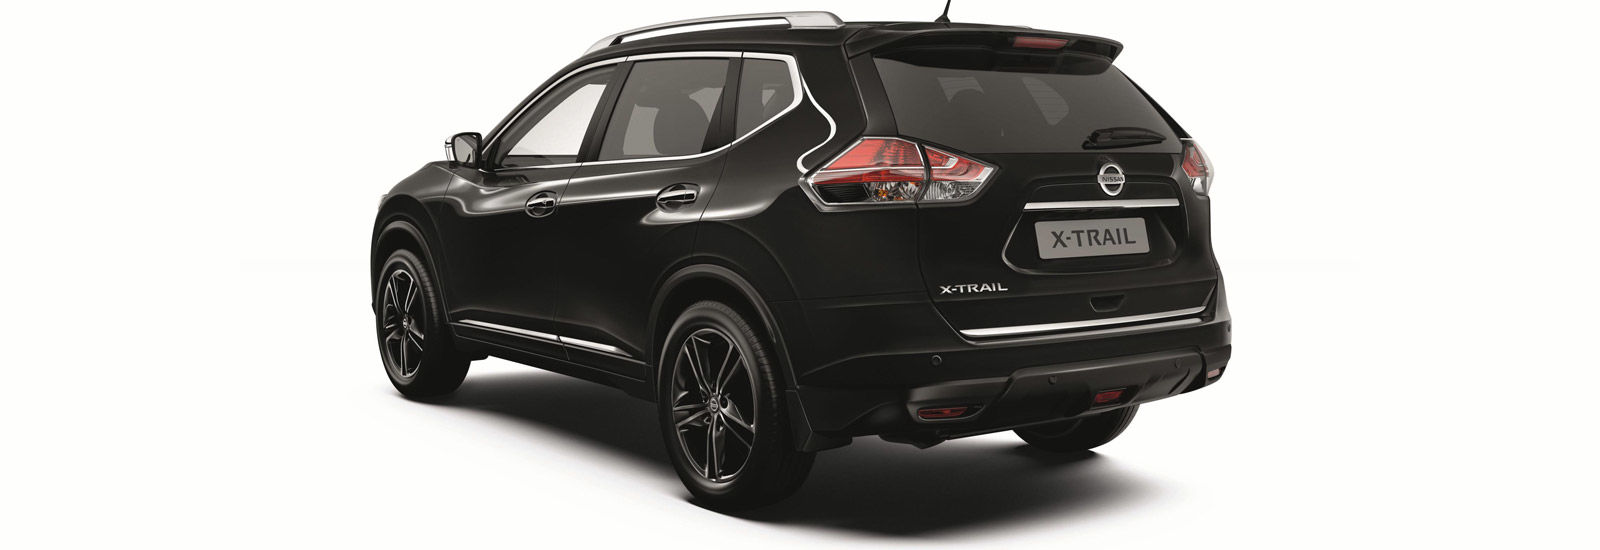 new nissan x trail style edition complete guide carwow. Black Bedroom Furniture Sets. Home Design Ideas